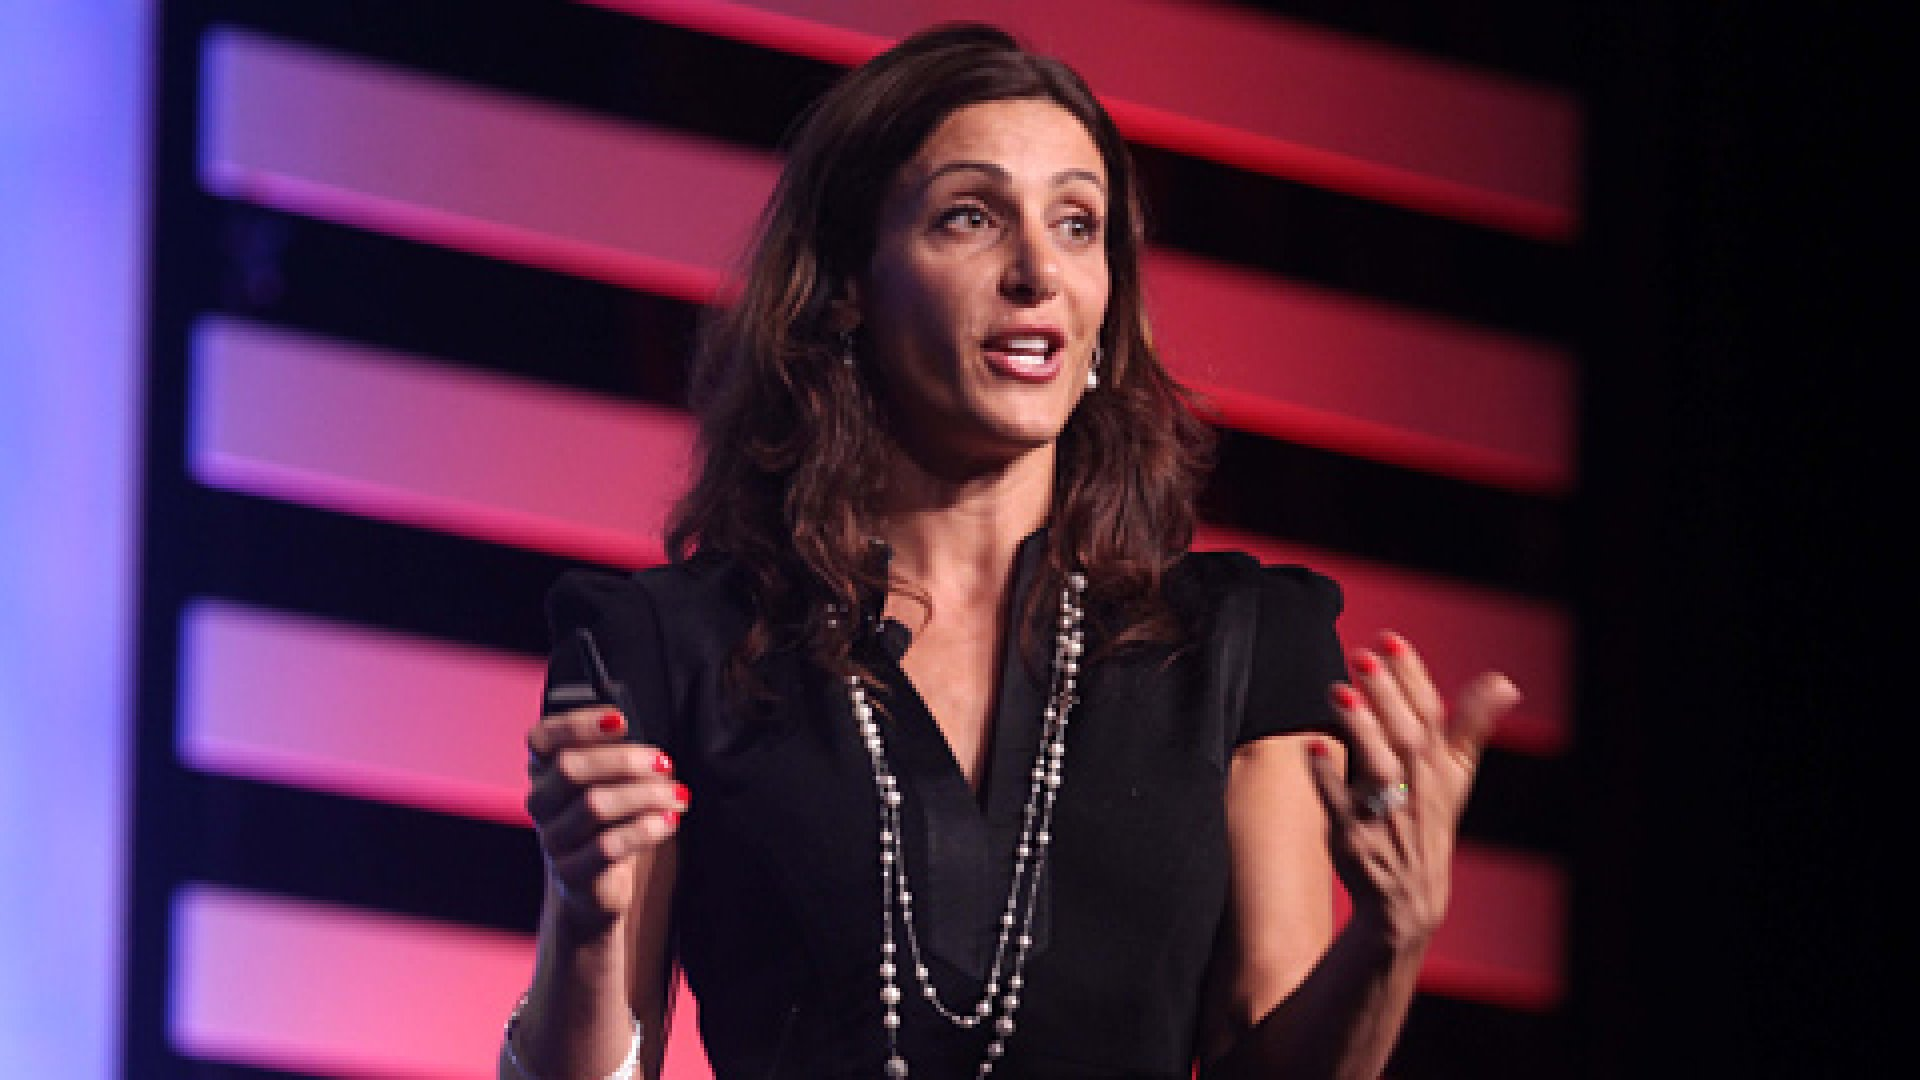 Stella and Dot CEO Jessica Herrin speaking during her Balance is the New Business general session at the Inc. 500 conference.